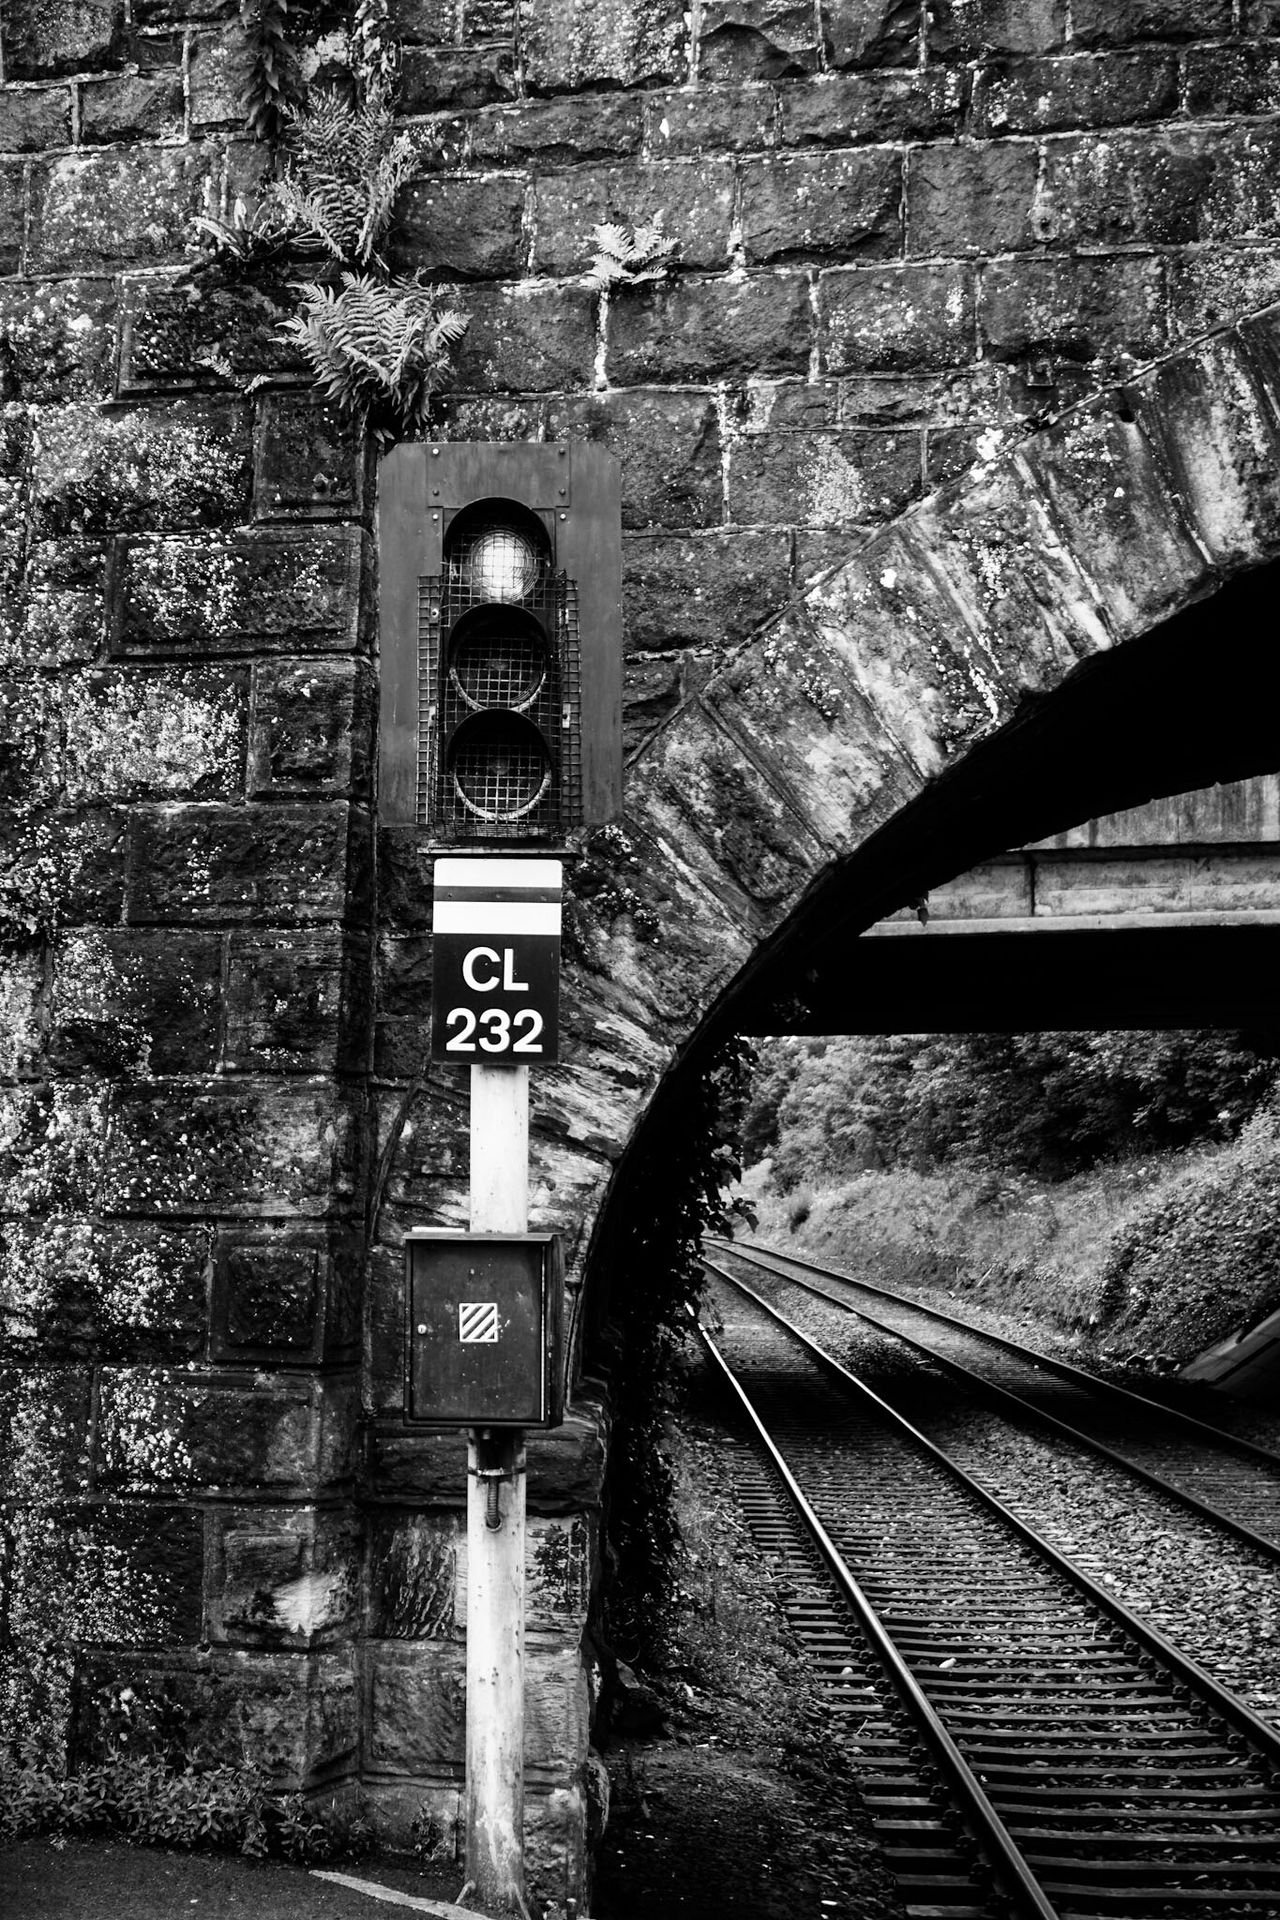 Public Transportation Railway Track Bridge Traffic Light  Waiting For A Train Train Station Blackandwhite Black & White Black And White